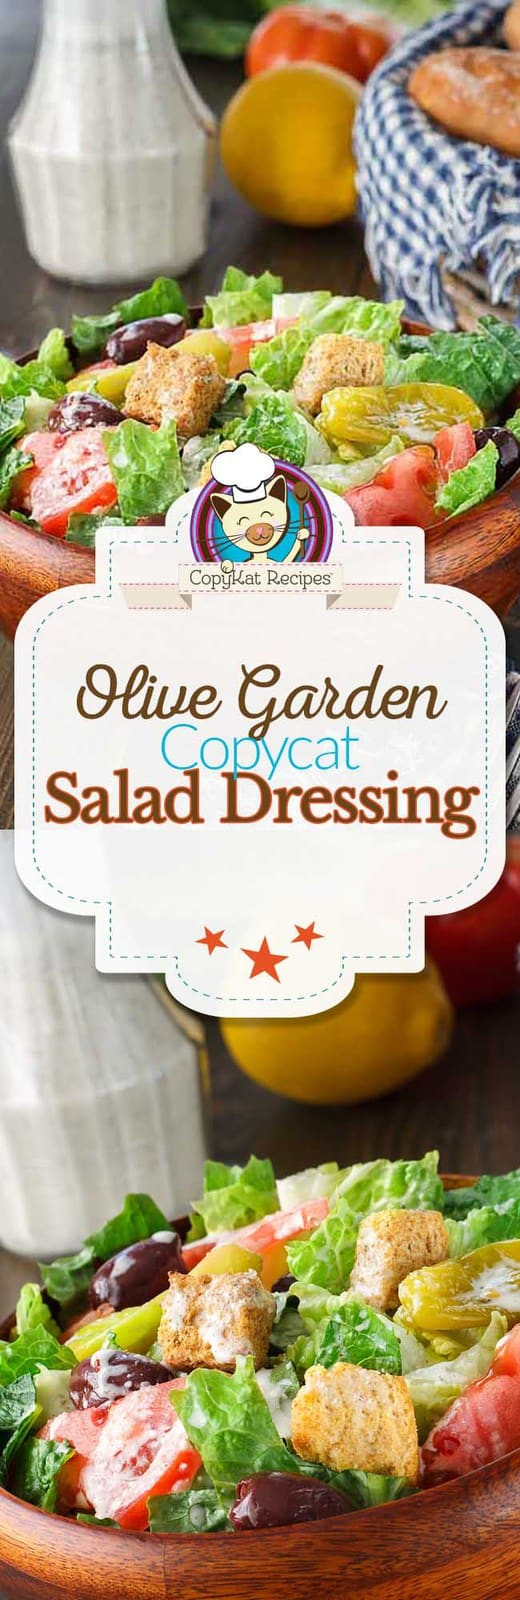 Recreate your own copycat version of the Olive Garden Salad dressing at home with this recipe.